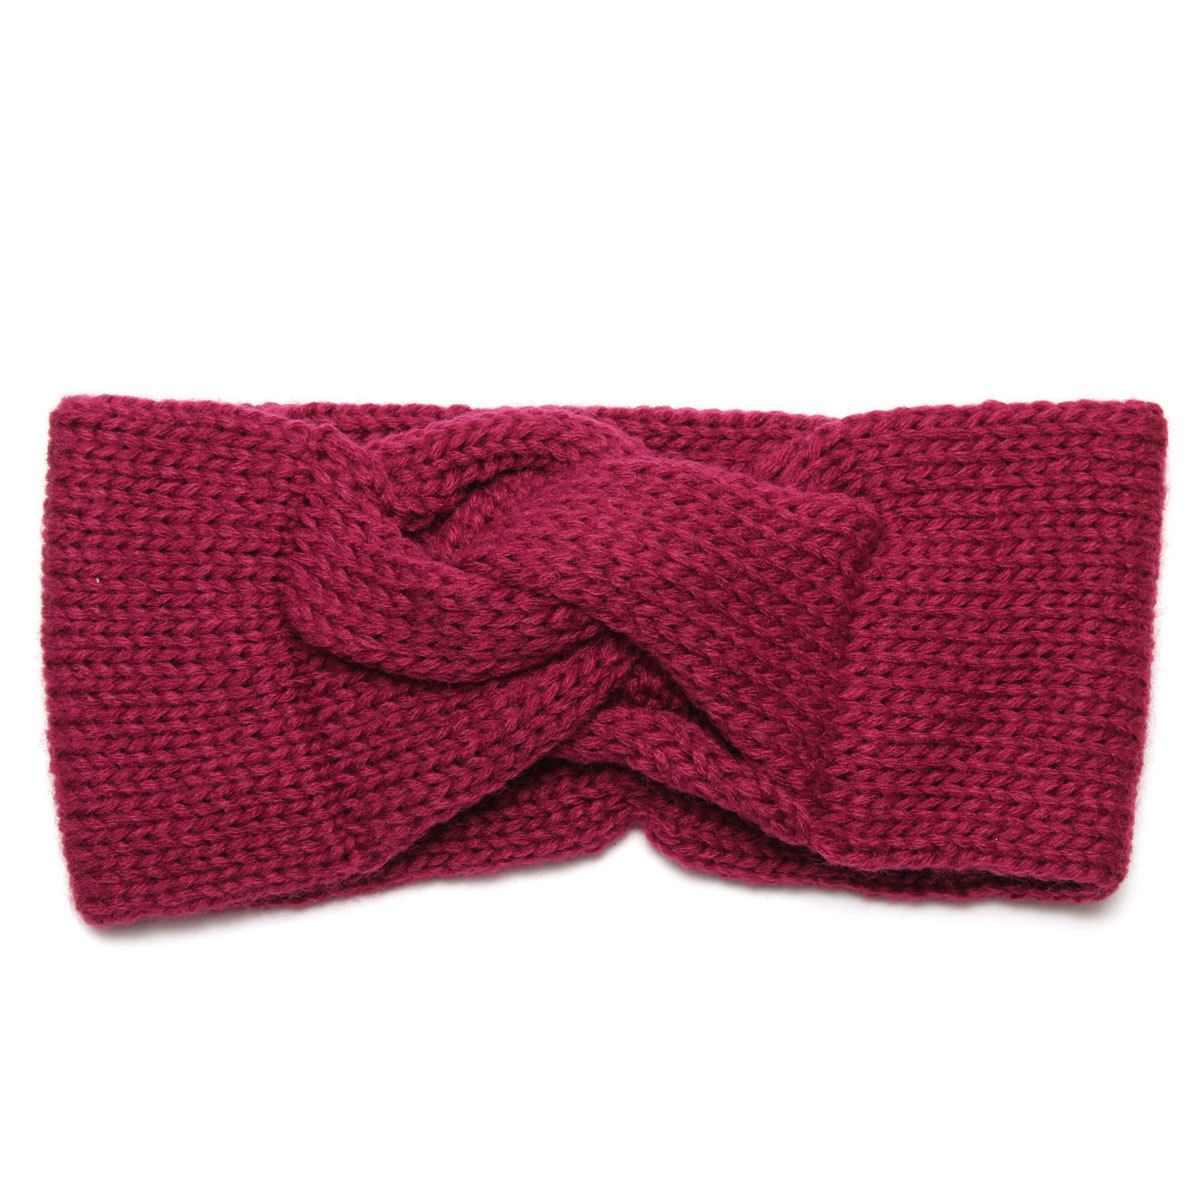 Crochet Hair Towel : ... Crochet-Turban-Headband-Bow-for-Women-Ear-Warmer-Twist-Wwide-Hair-Band